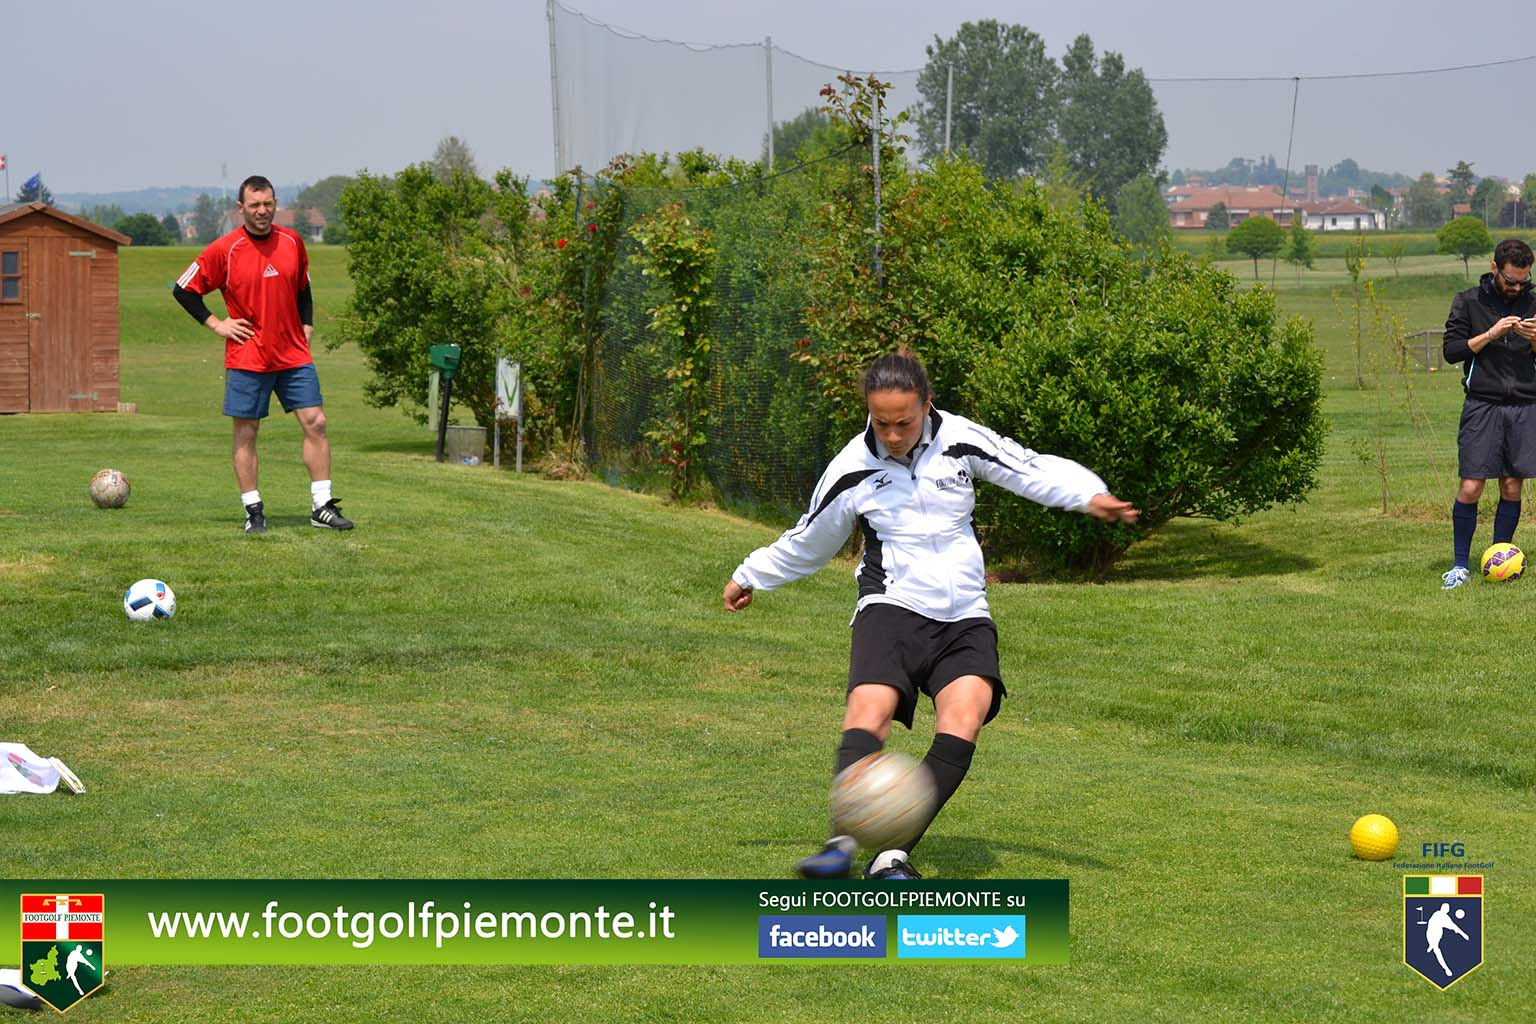 FOTO 9 Regions' Cup Footgolf Piemonte 2016 Golf Città di Asti (At) 30apr16-43